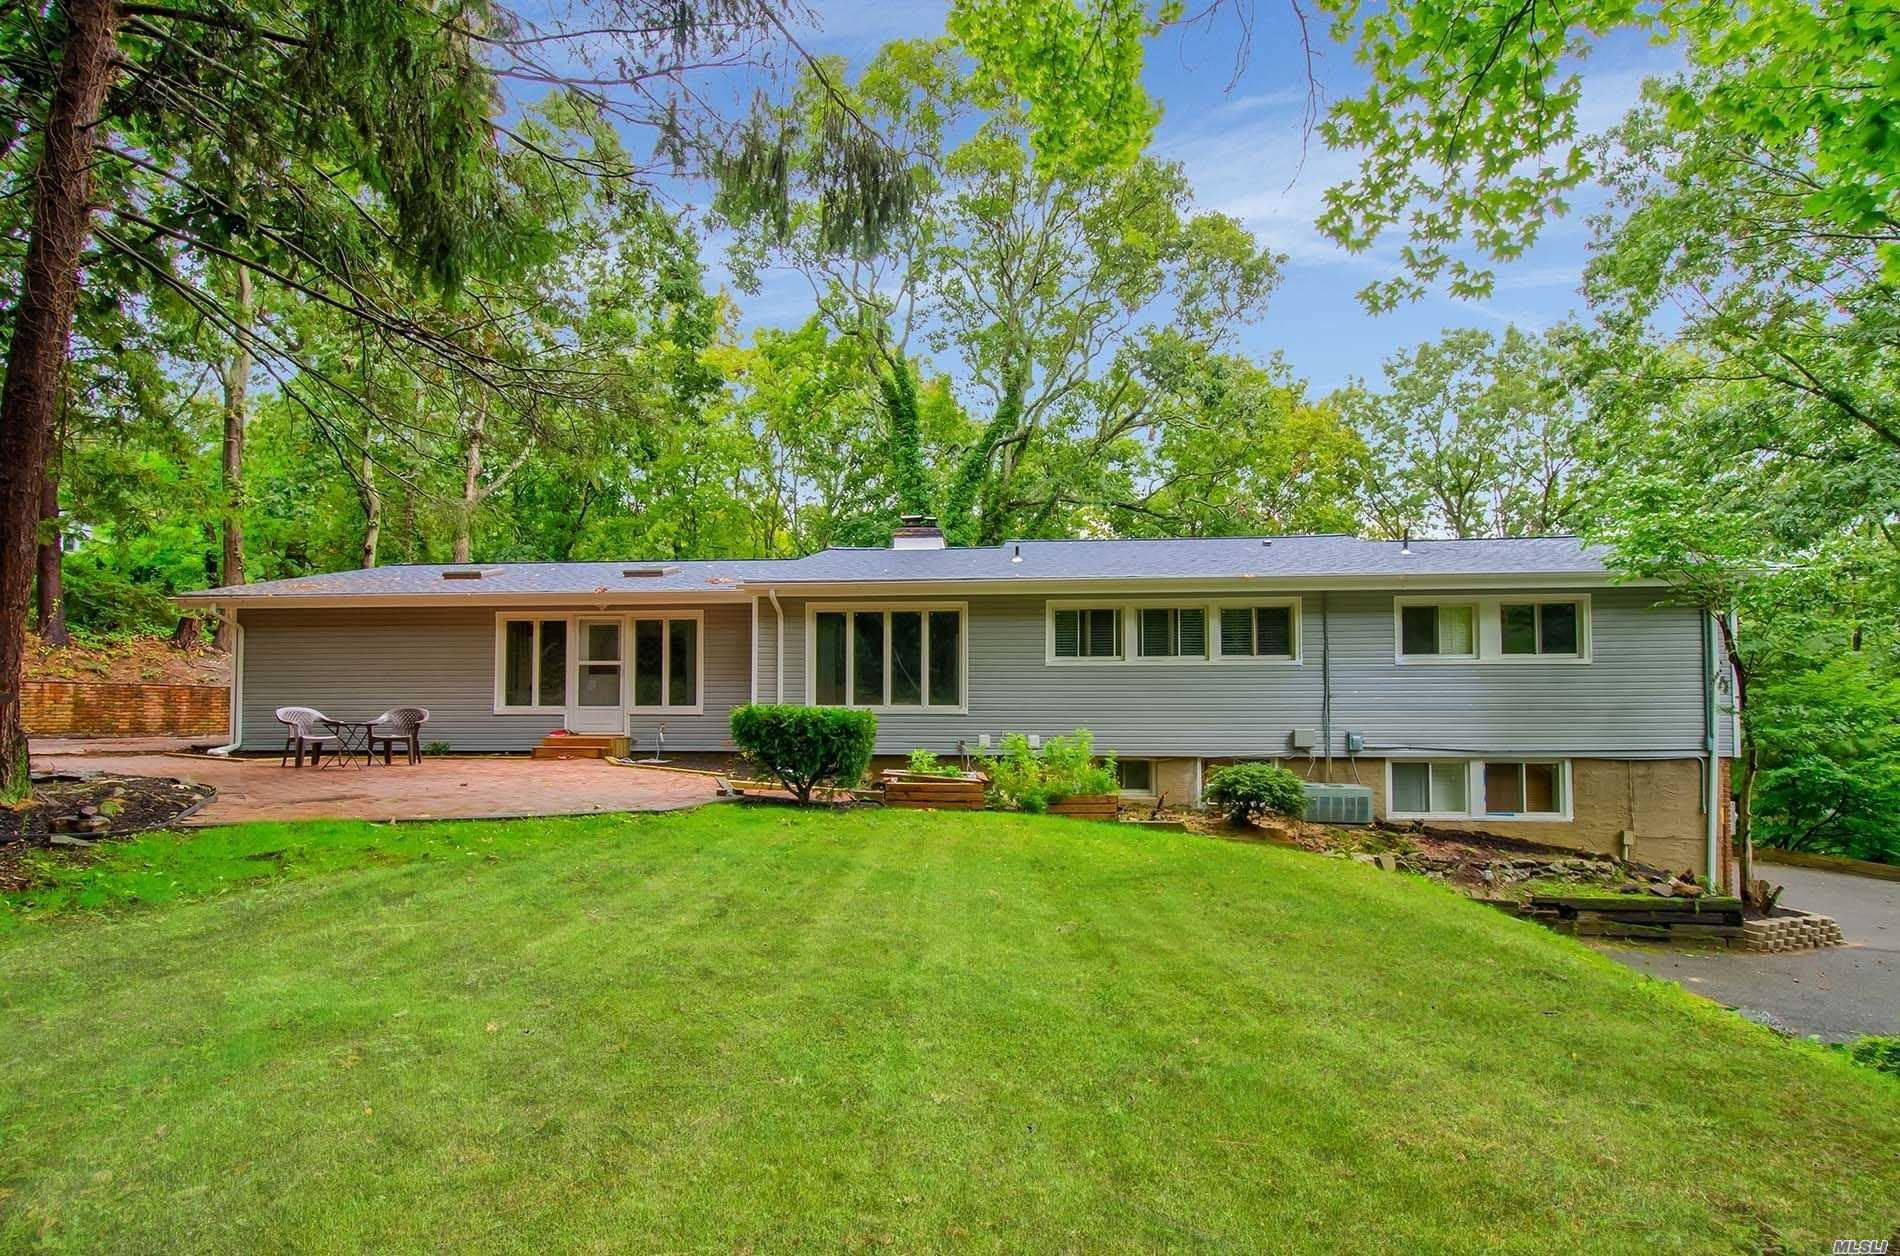 33 Treeview Drive, Melville, NY 11747 - MLS#: 3248447